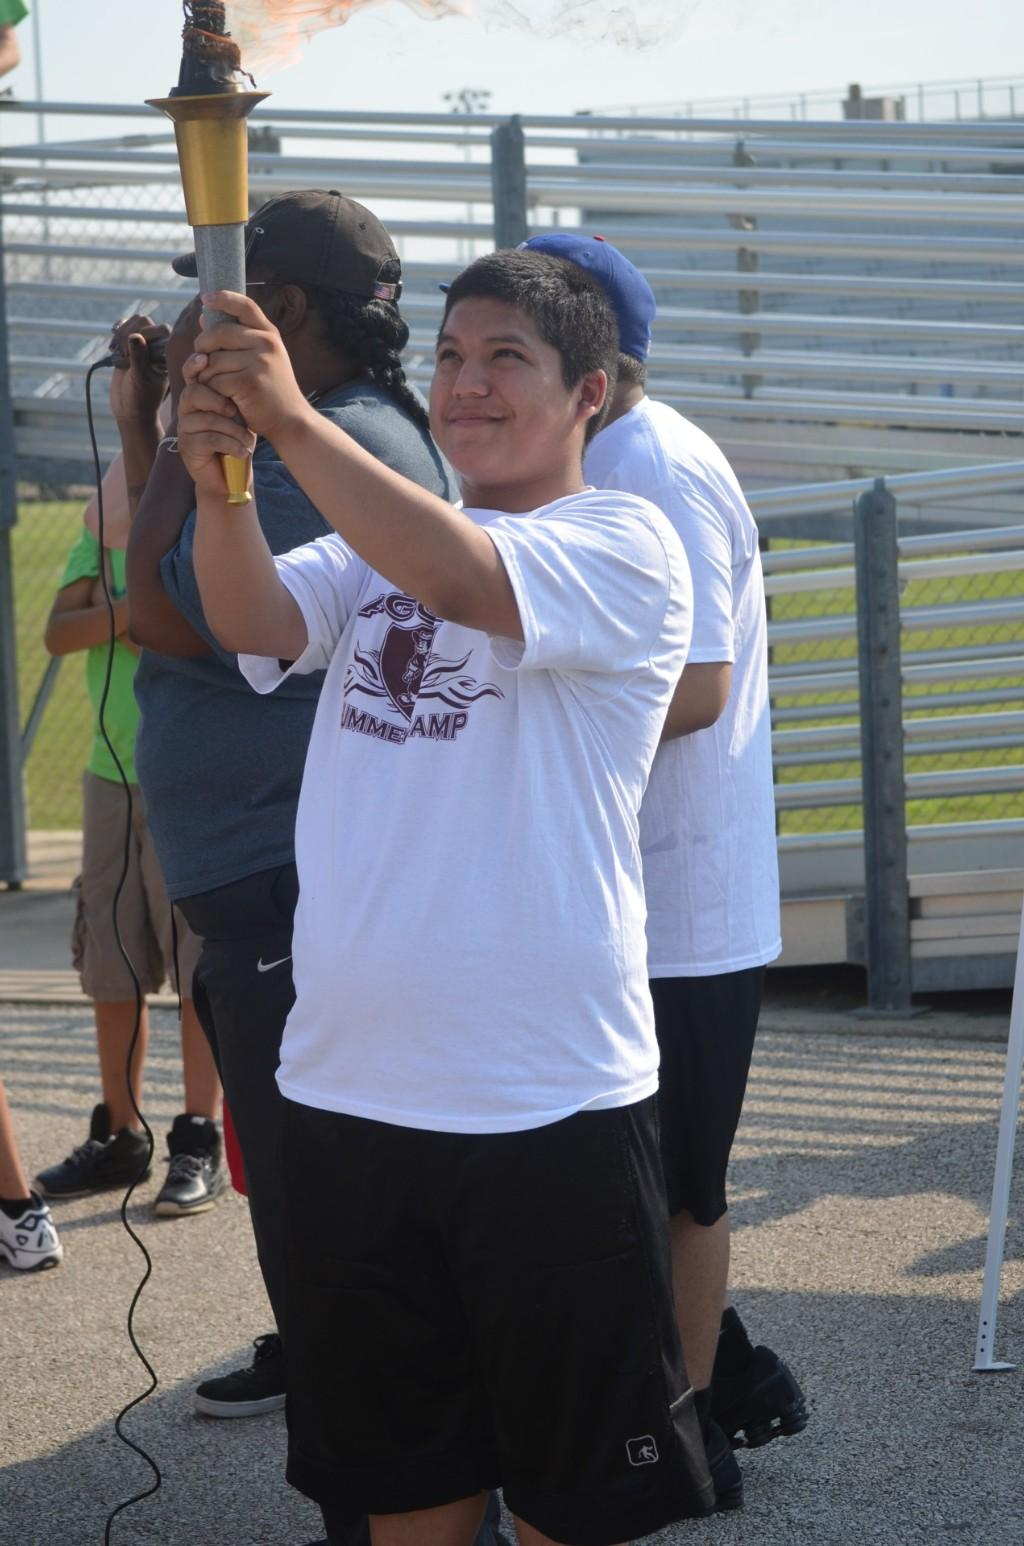 Carrying the Special Olympics torch